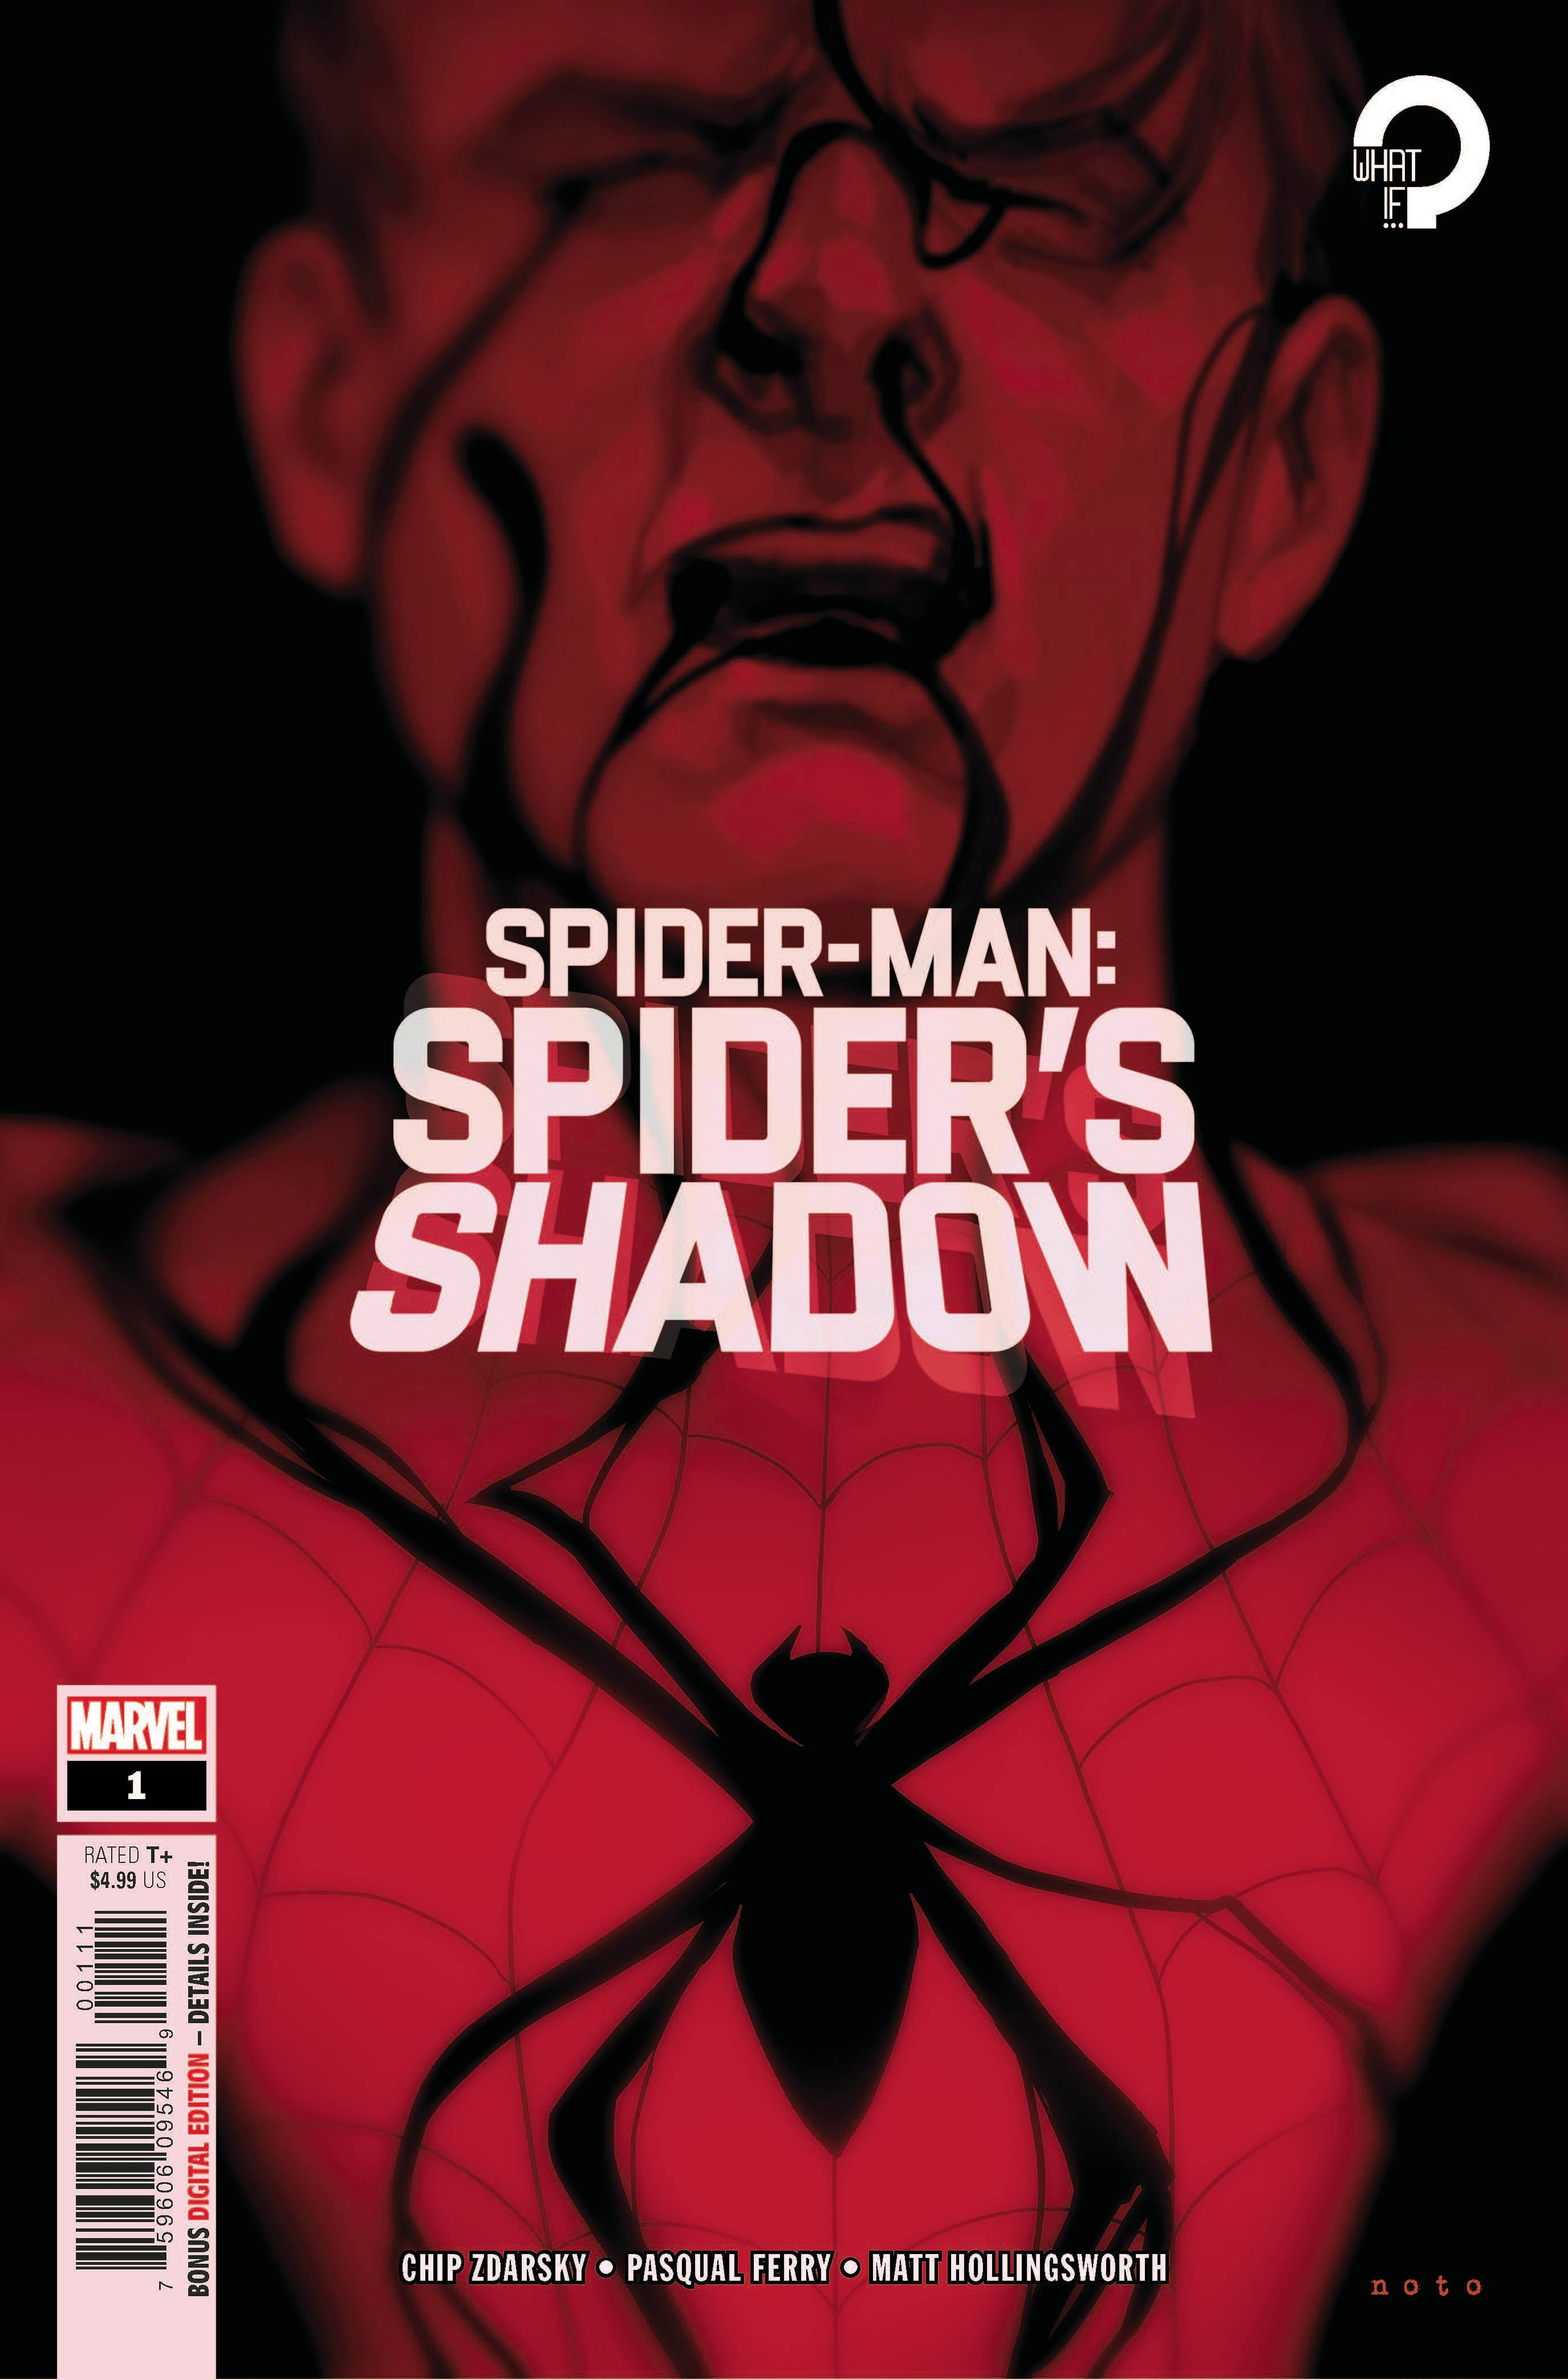 SPIDER-MAN SPIDERS SHADOW #1 (OF 5)